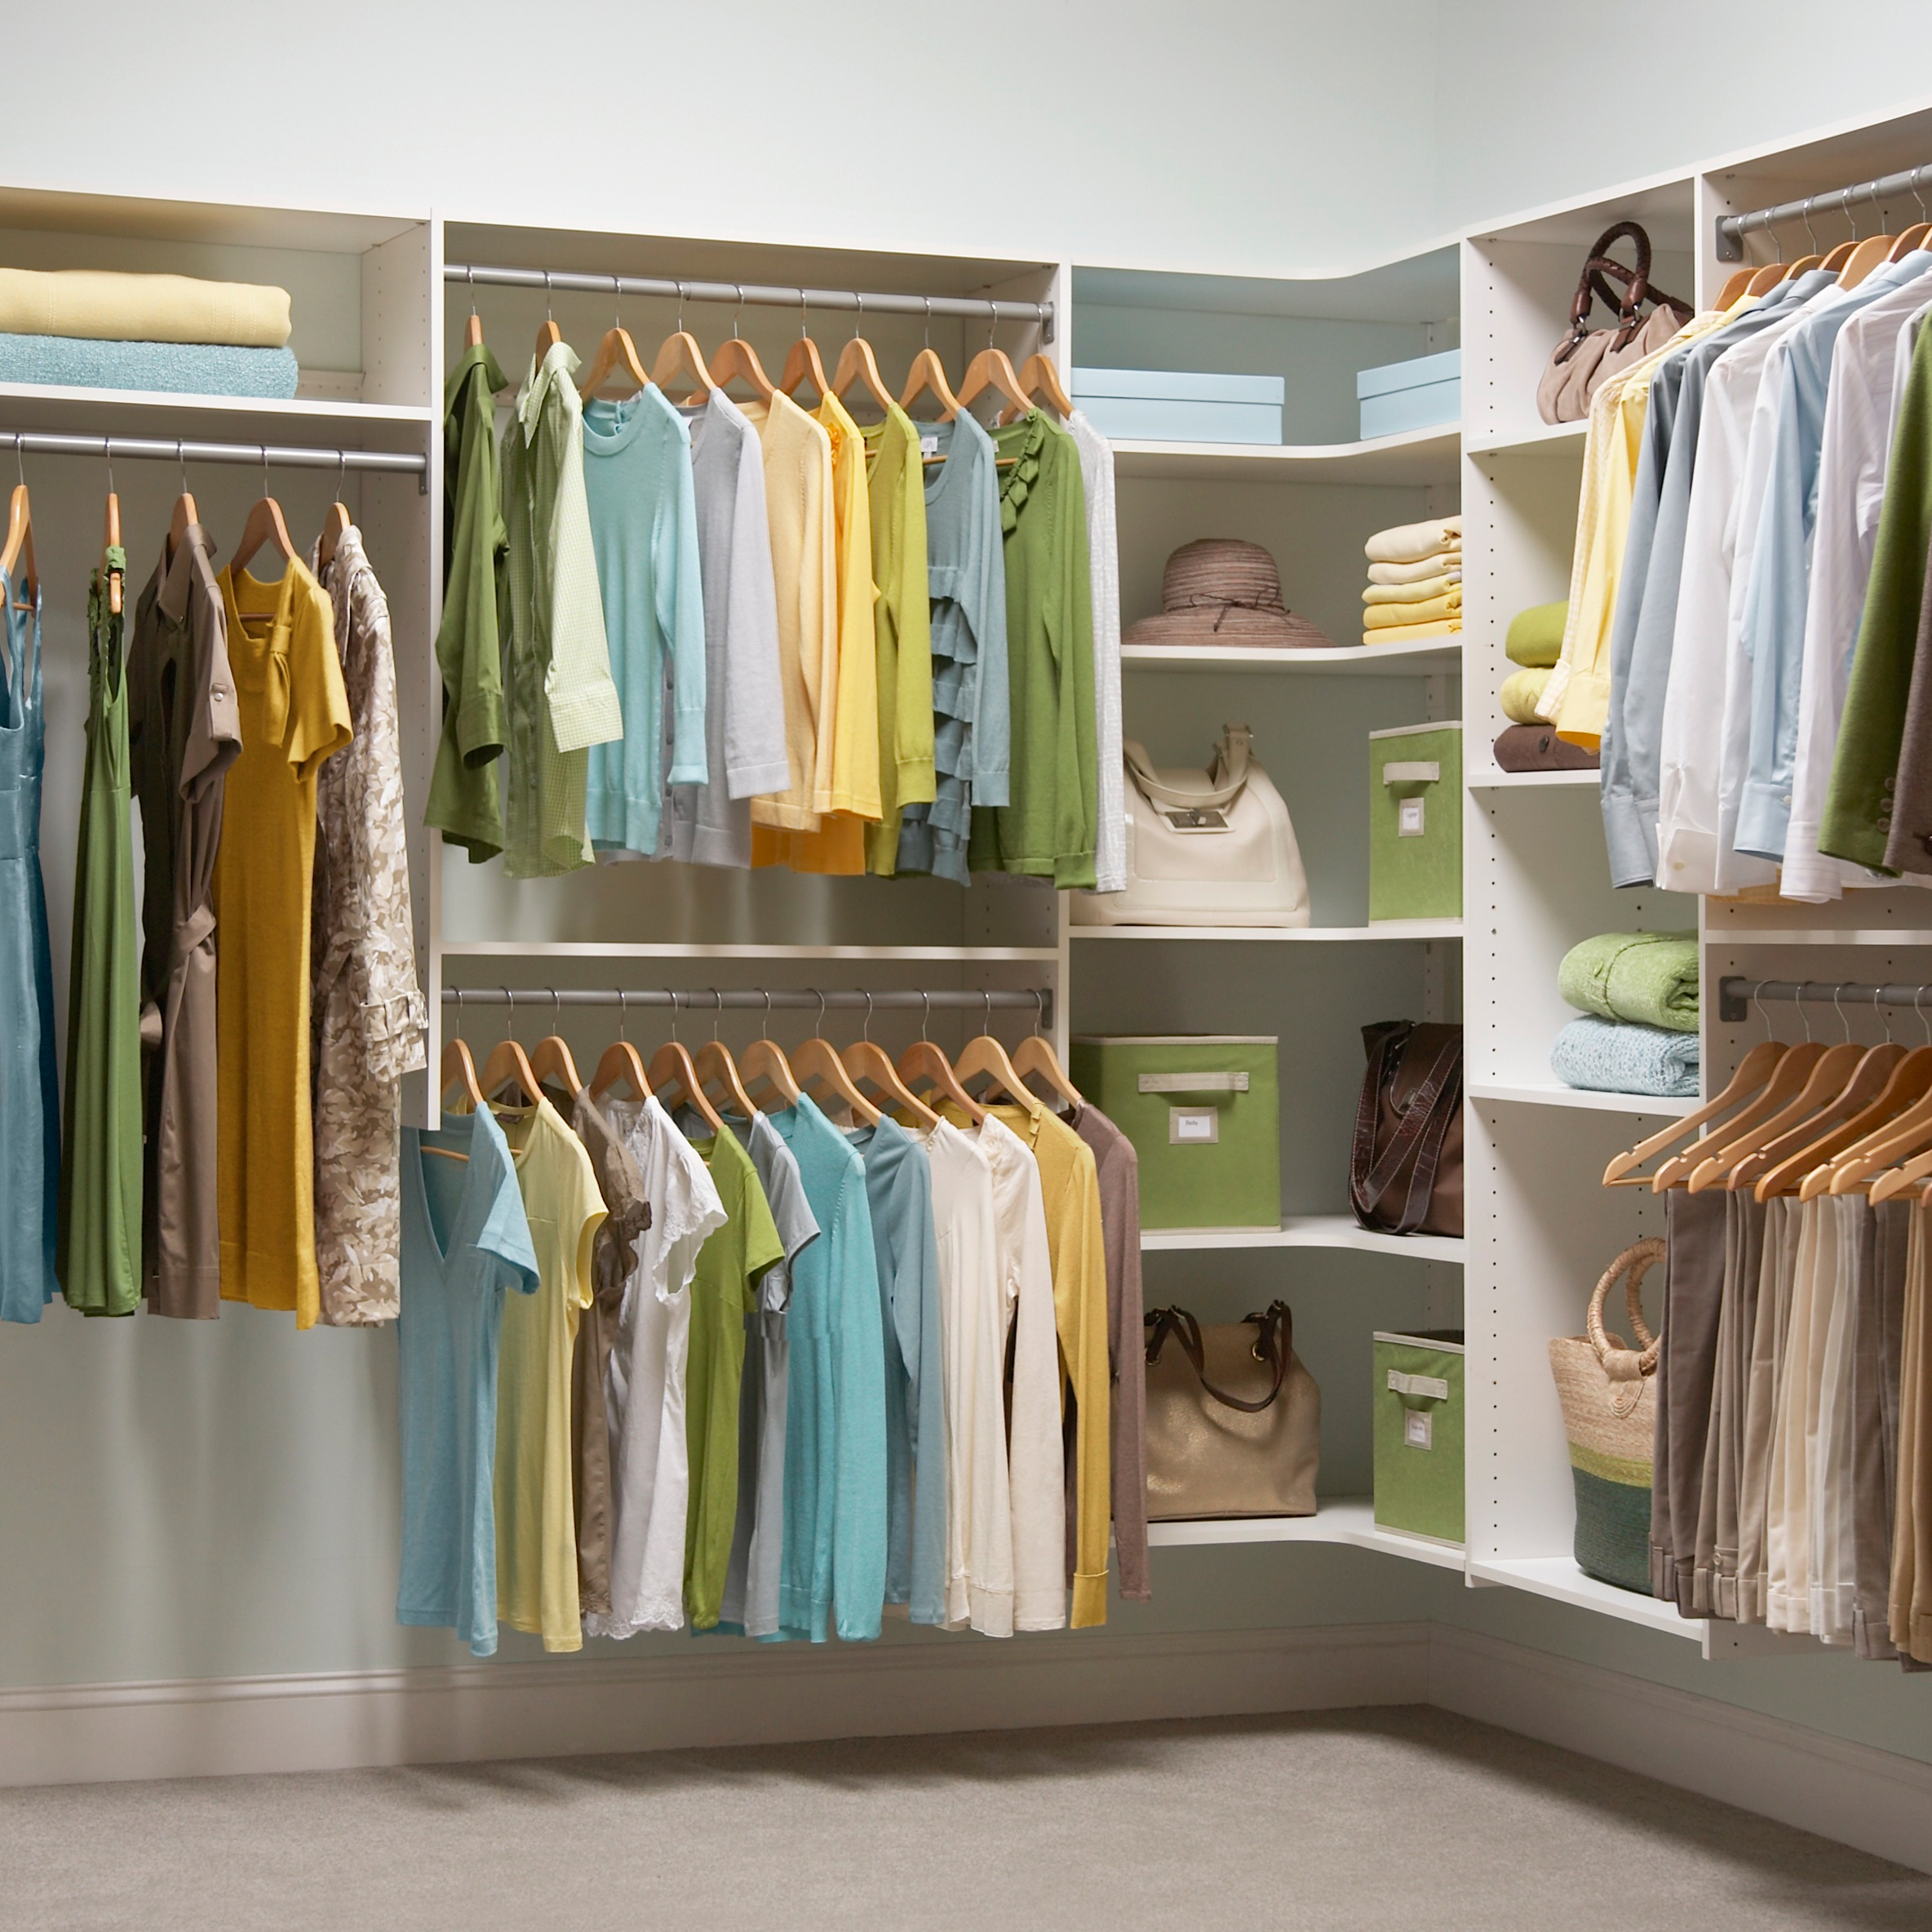 4 ways to think outside the closet - Closet Design Home Depot